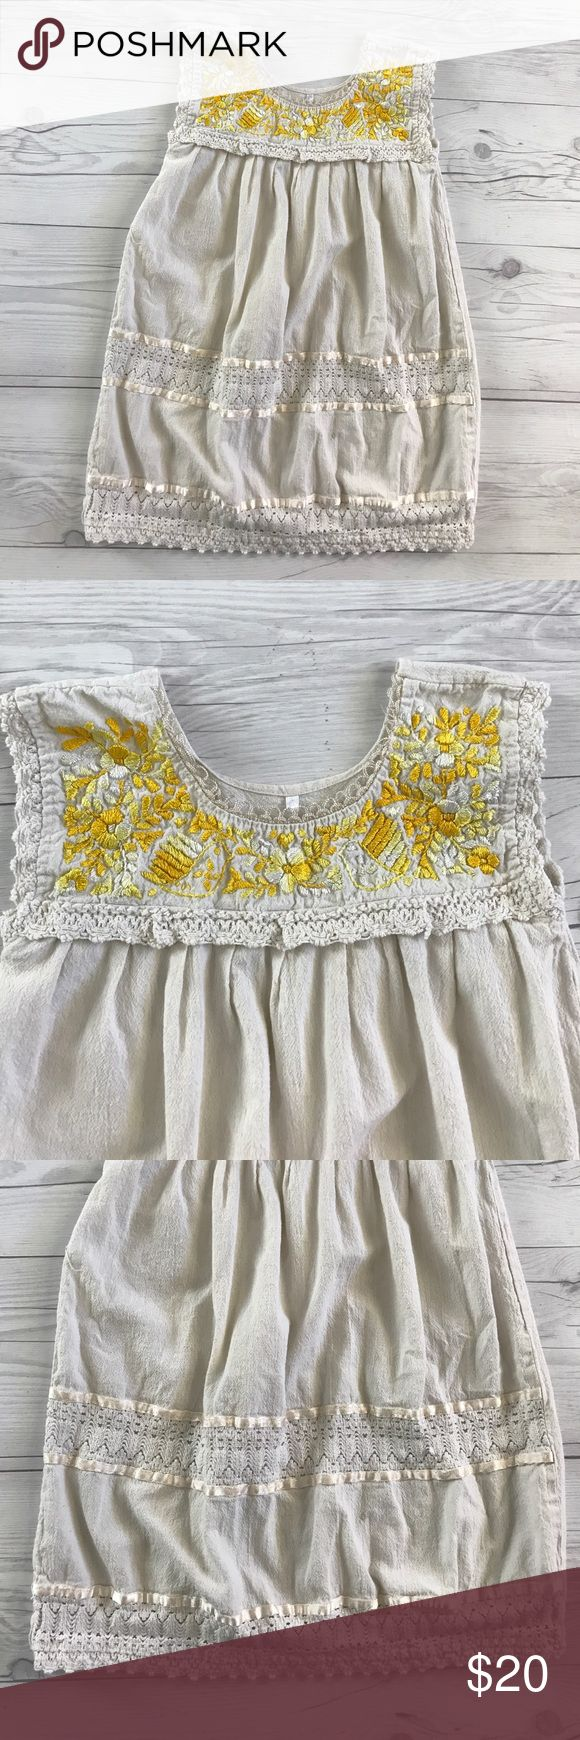 Bohemian style dress Cream color dress with yellow flower embroidery and crochet details. Like new condition size 6. I have lots of children's clothing check out my closet. ALL ITEMS ARE BUY 3 GET 1 FREE! Dresses